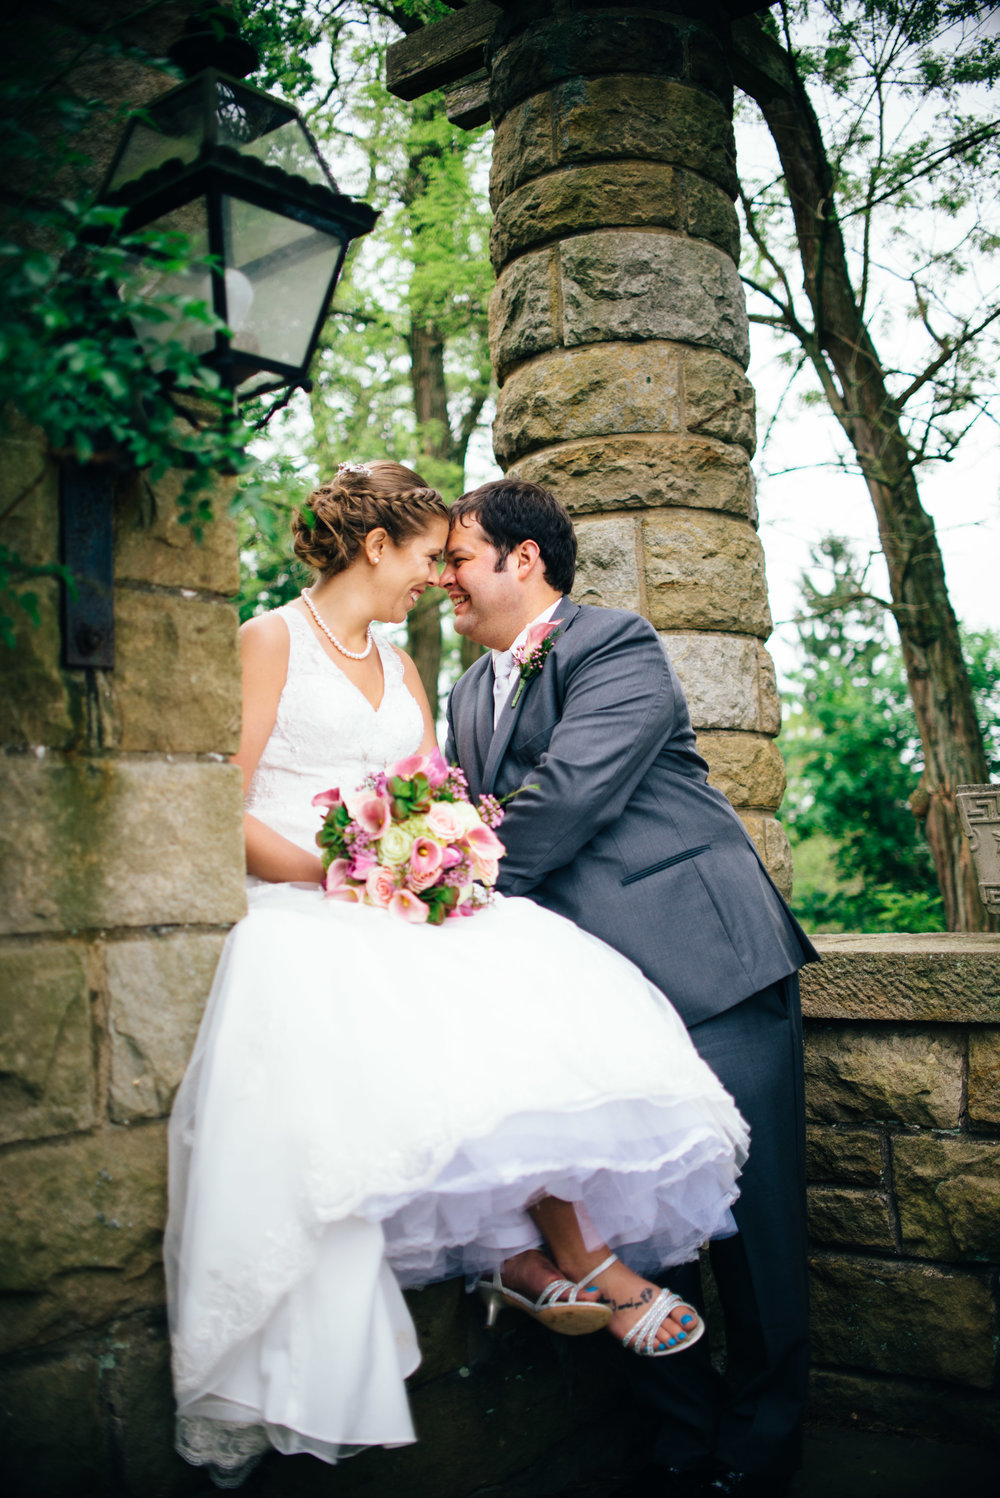 Bride sitting on a stone wall in a garden with groom standing beside her, smiling at eachother